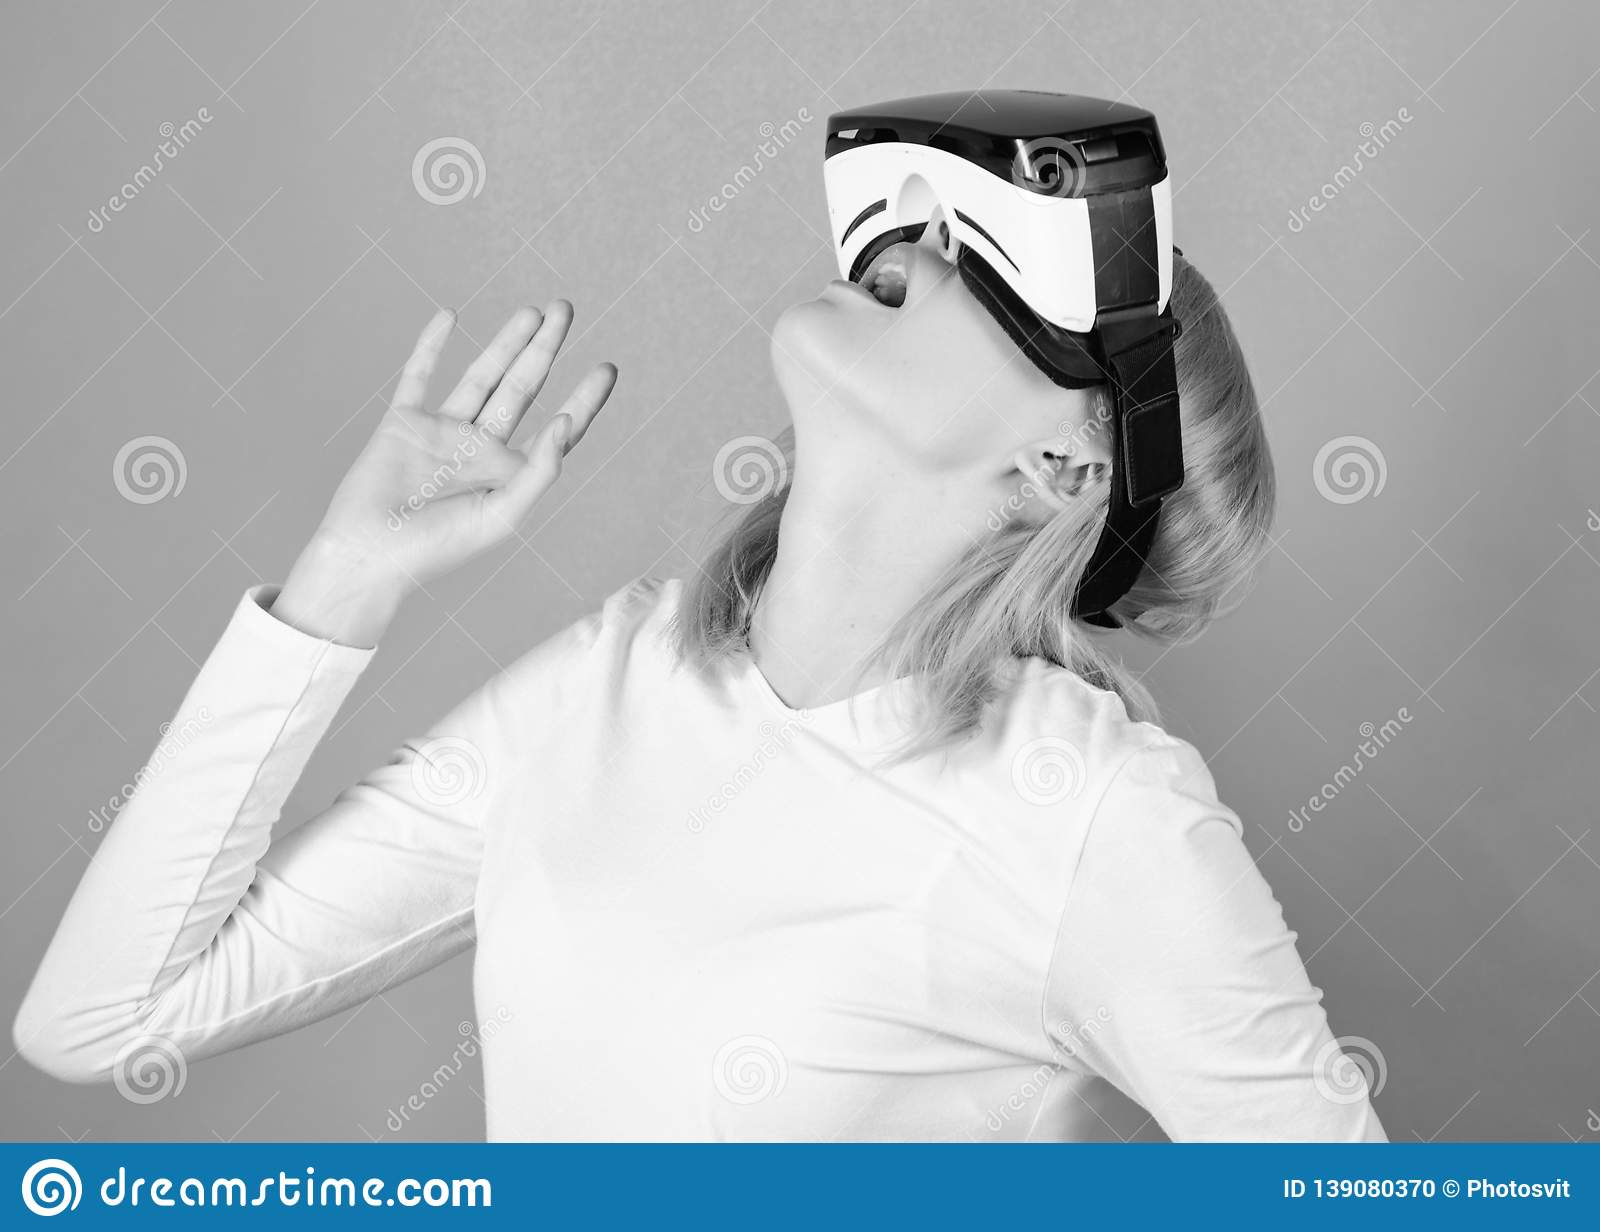 Person with virtual reality helmet isolated on green background. Woman with virtual reality headset. Cyber game.